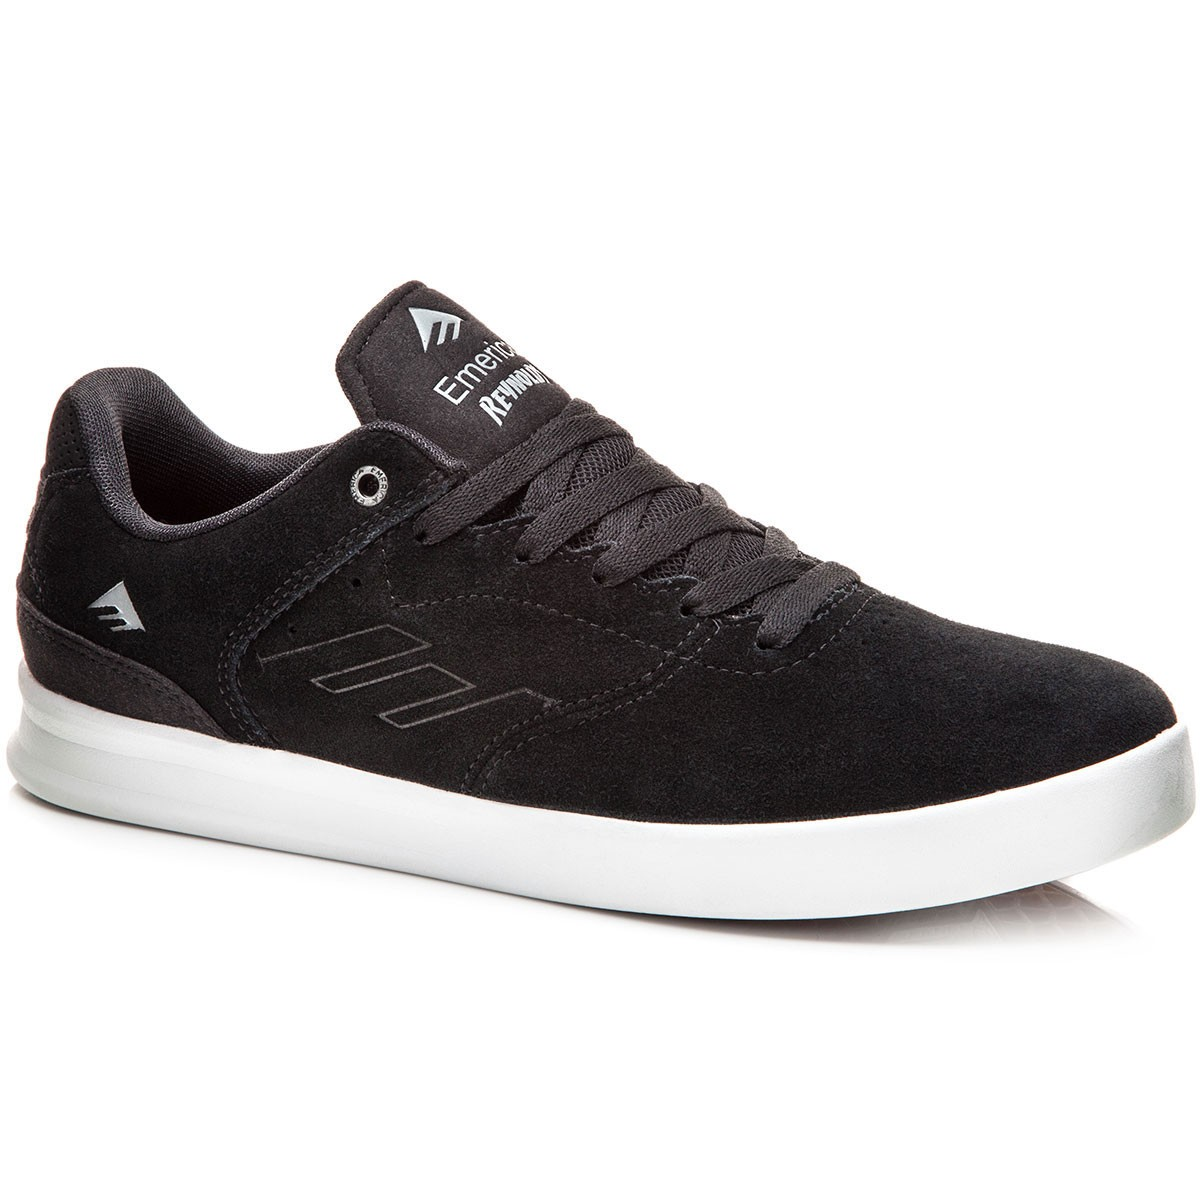 Emerica The Reynolds Low Shoes - Black/Silver - 8.0